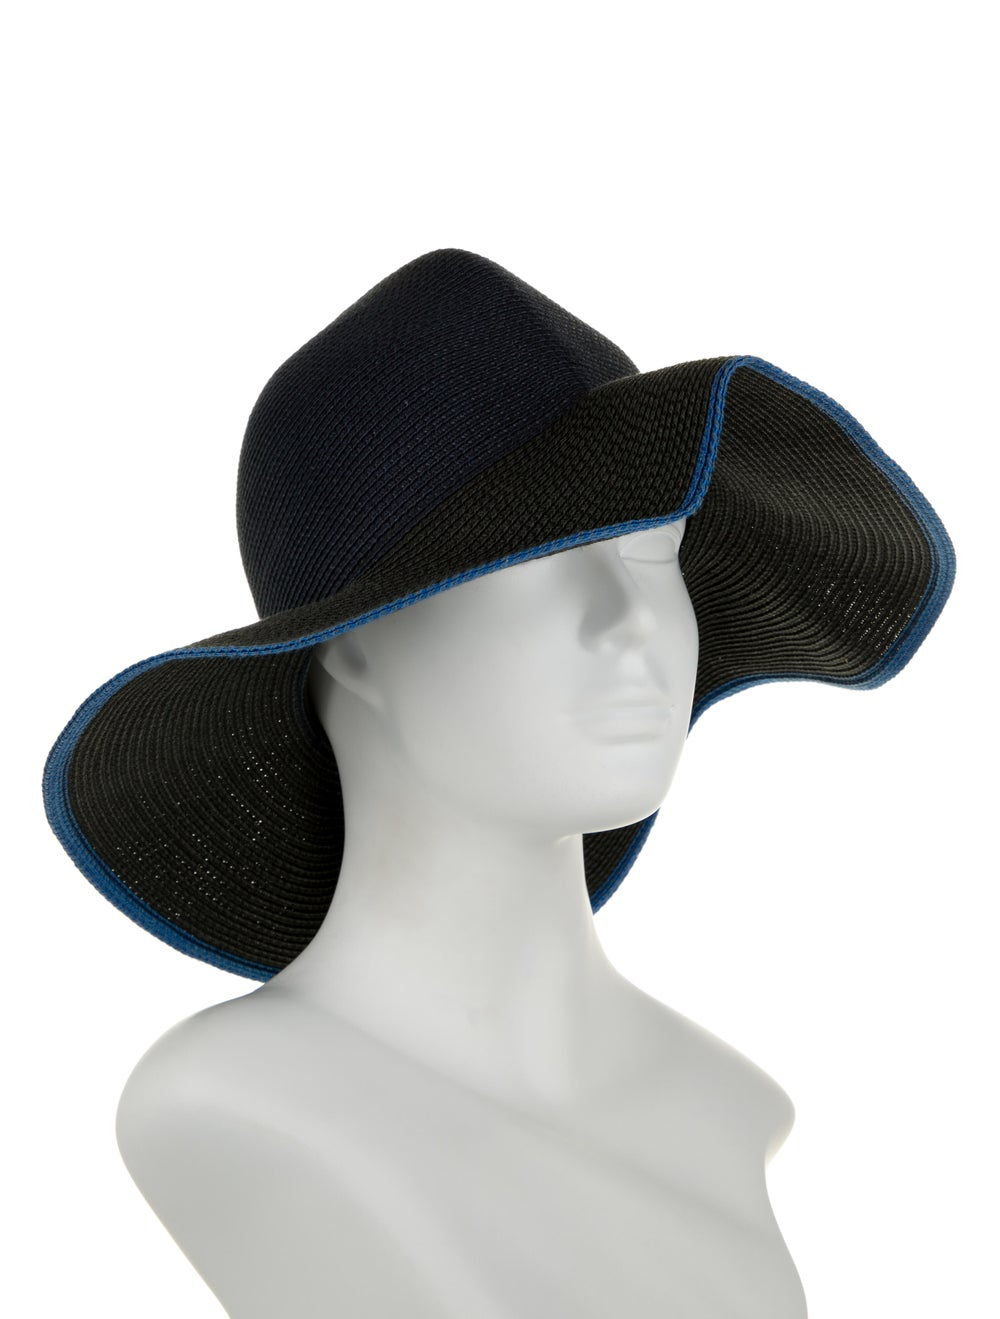 Rag & Bone Straw Wide-Brim Hat navy - image 3